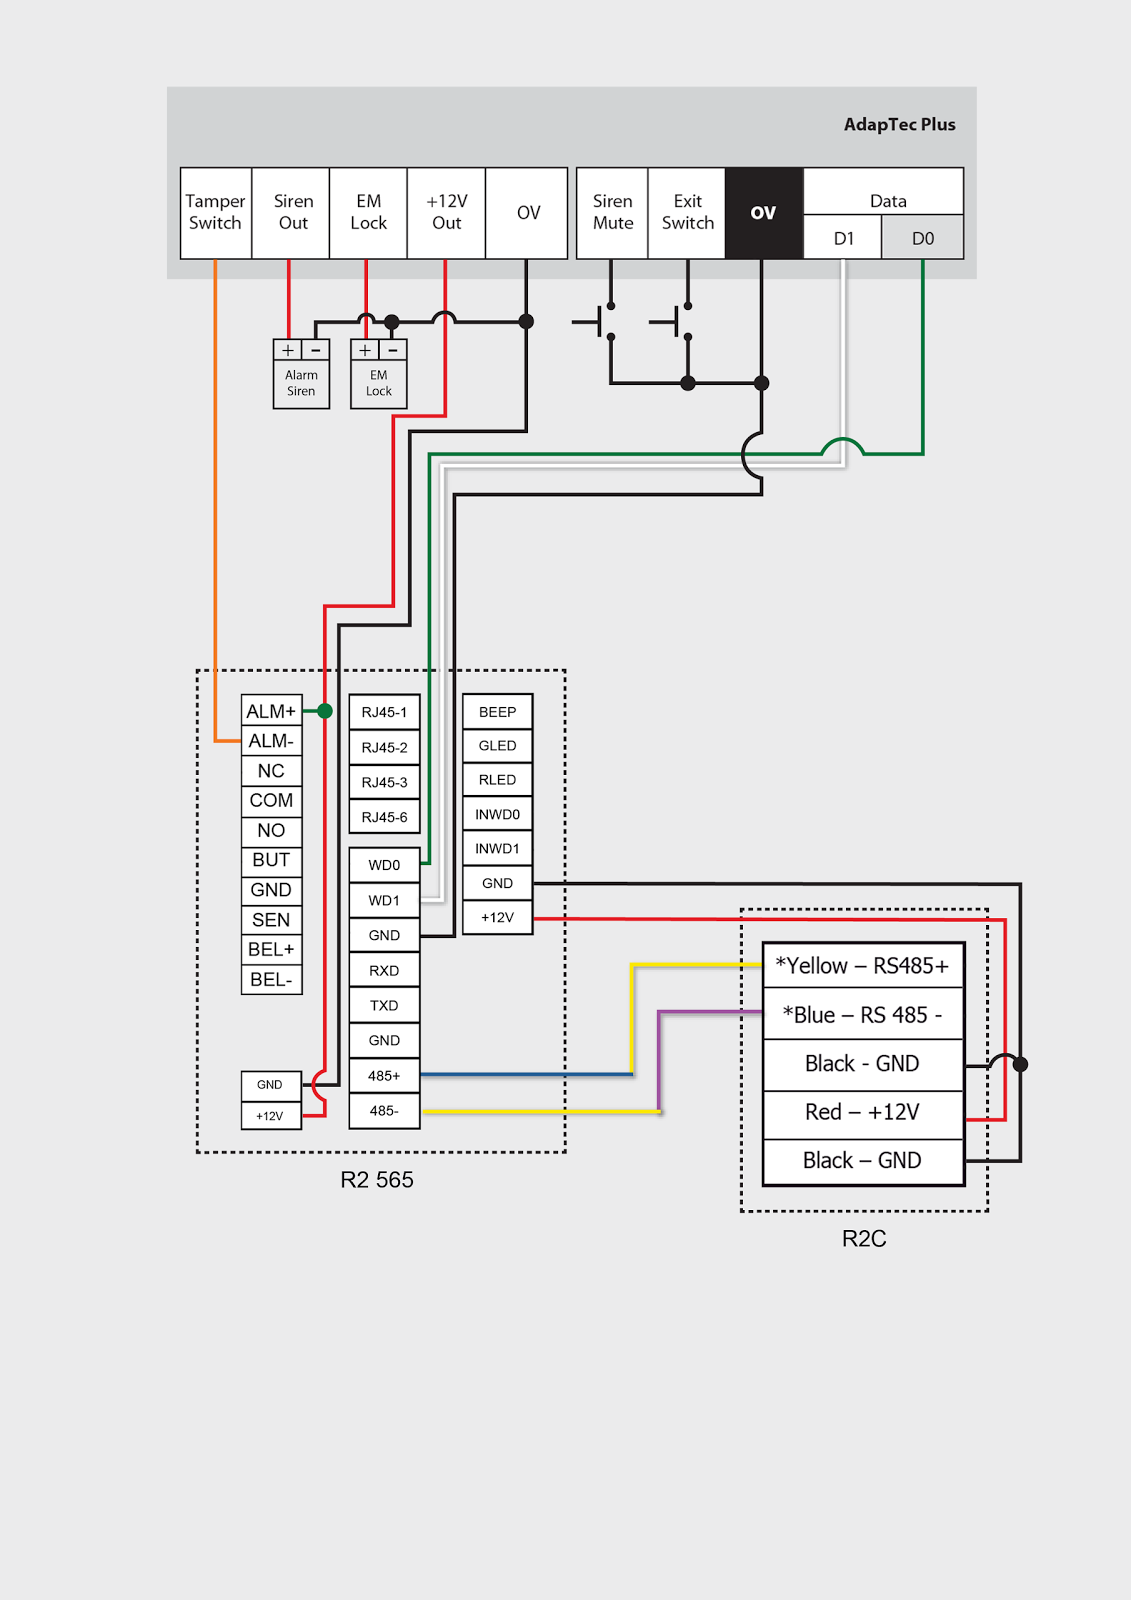 Installation Diagram for R2 (FEM565)  R2c with New AdapTec Plus | FingerTec Technical Blog